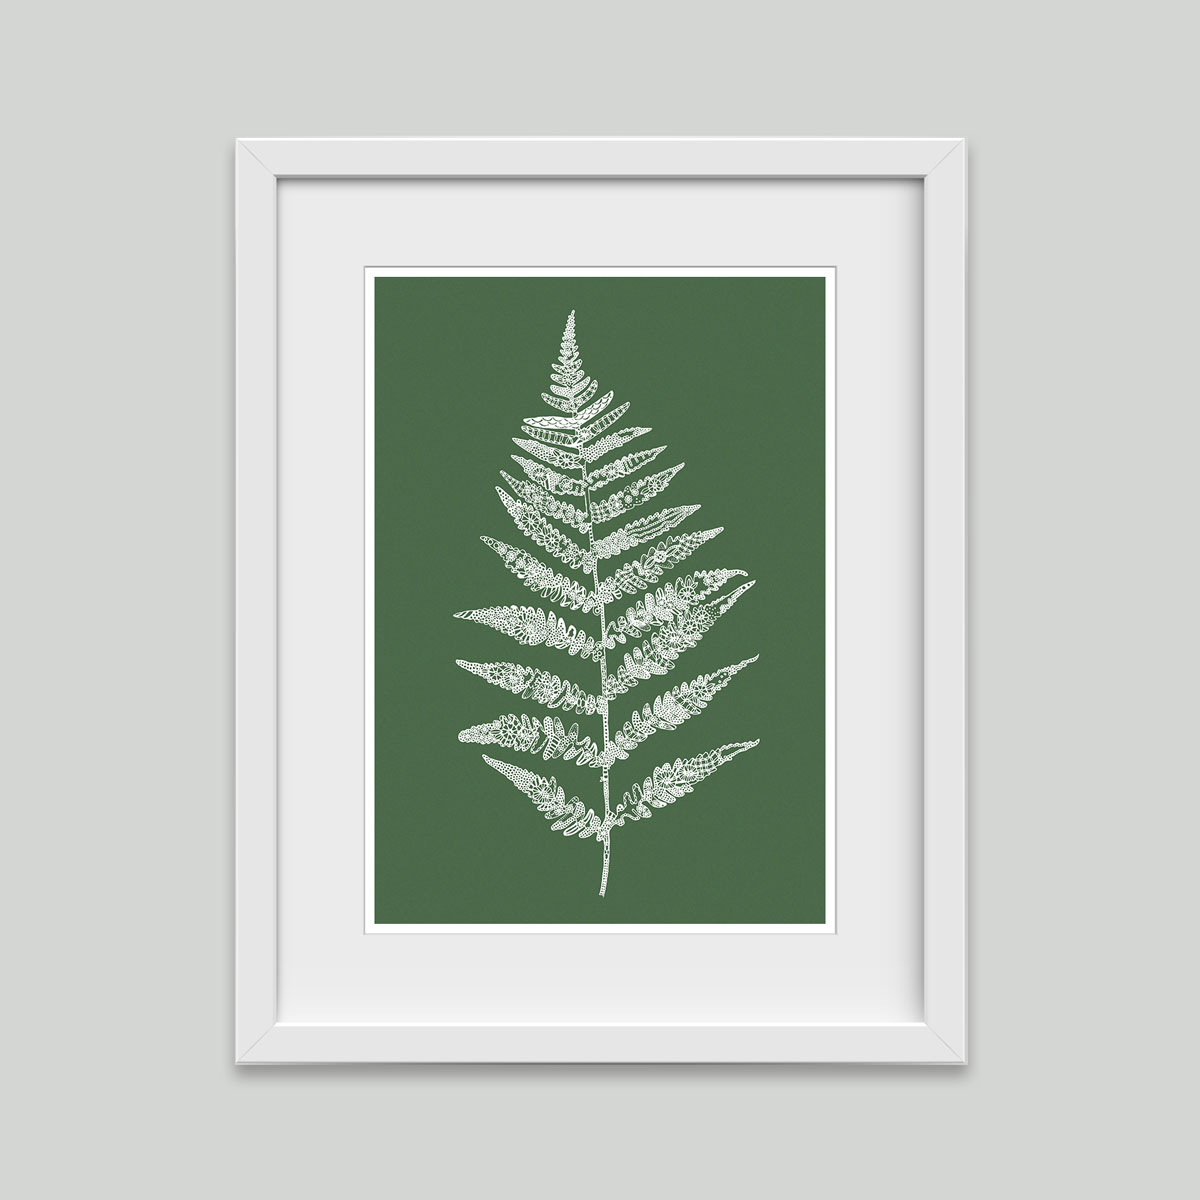 Fern-Frame(White-on-Green).jpg